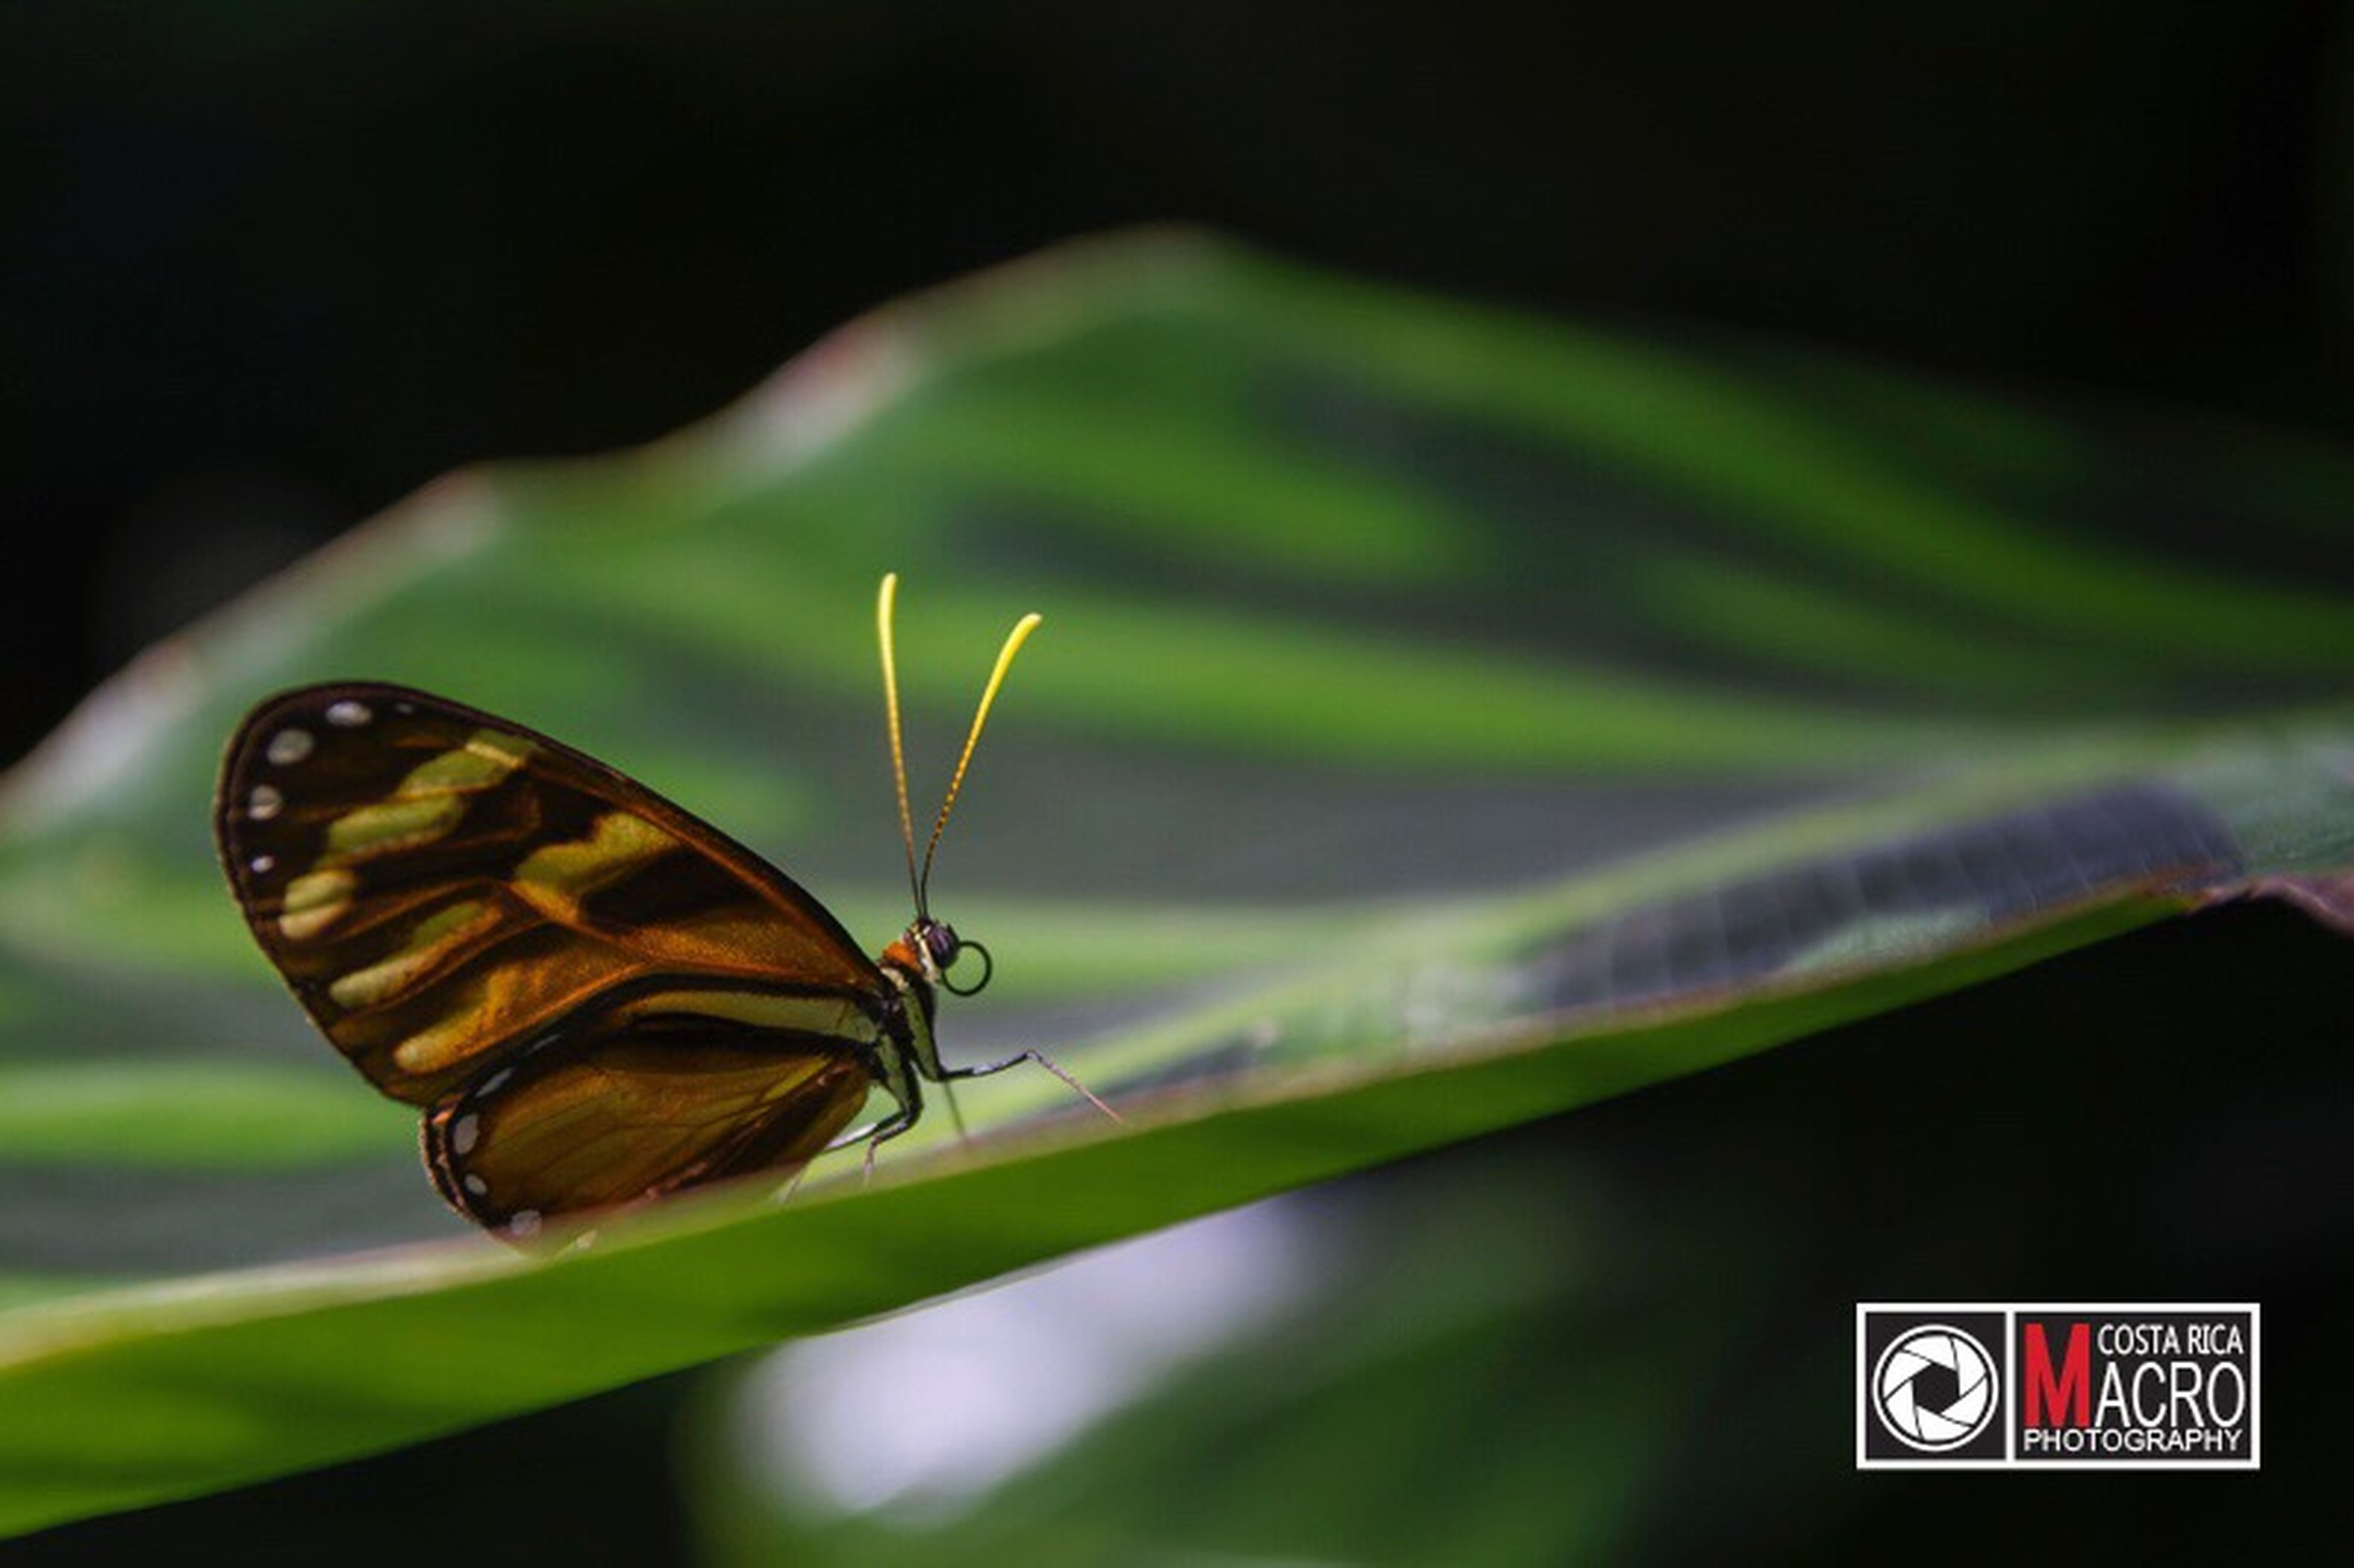 insect, animal themes, animals in the wild, close-up, nature, butterfly - insect, one animal, green color, beauty in nature, no people, animal wildlife, outdoors, fragility, day